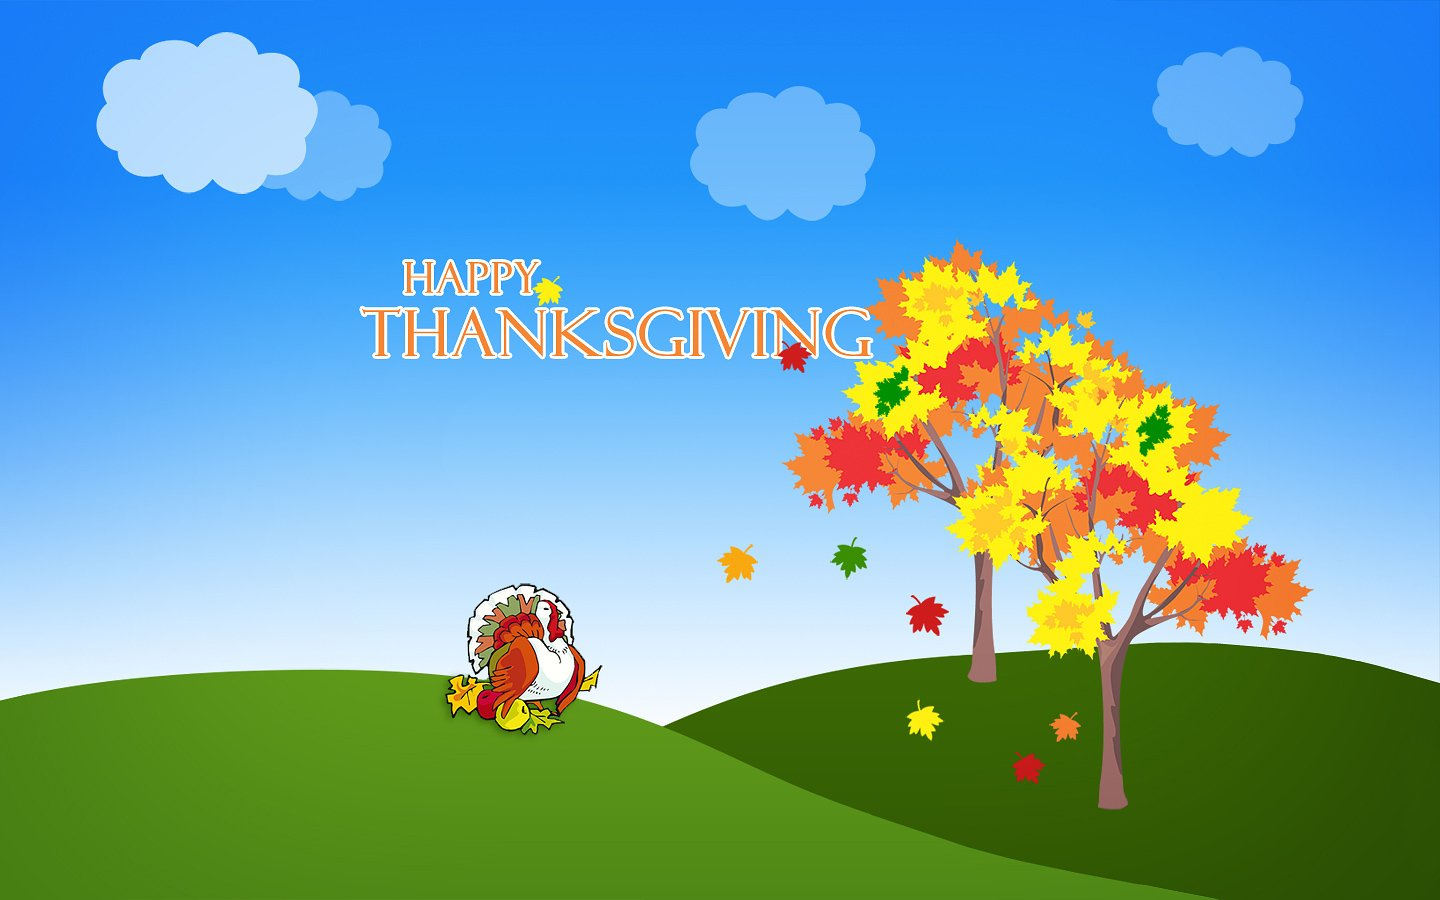 Funny Thanksgiving Wallpaper Backgrounds 1440x900